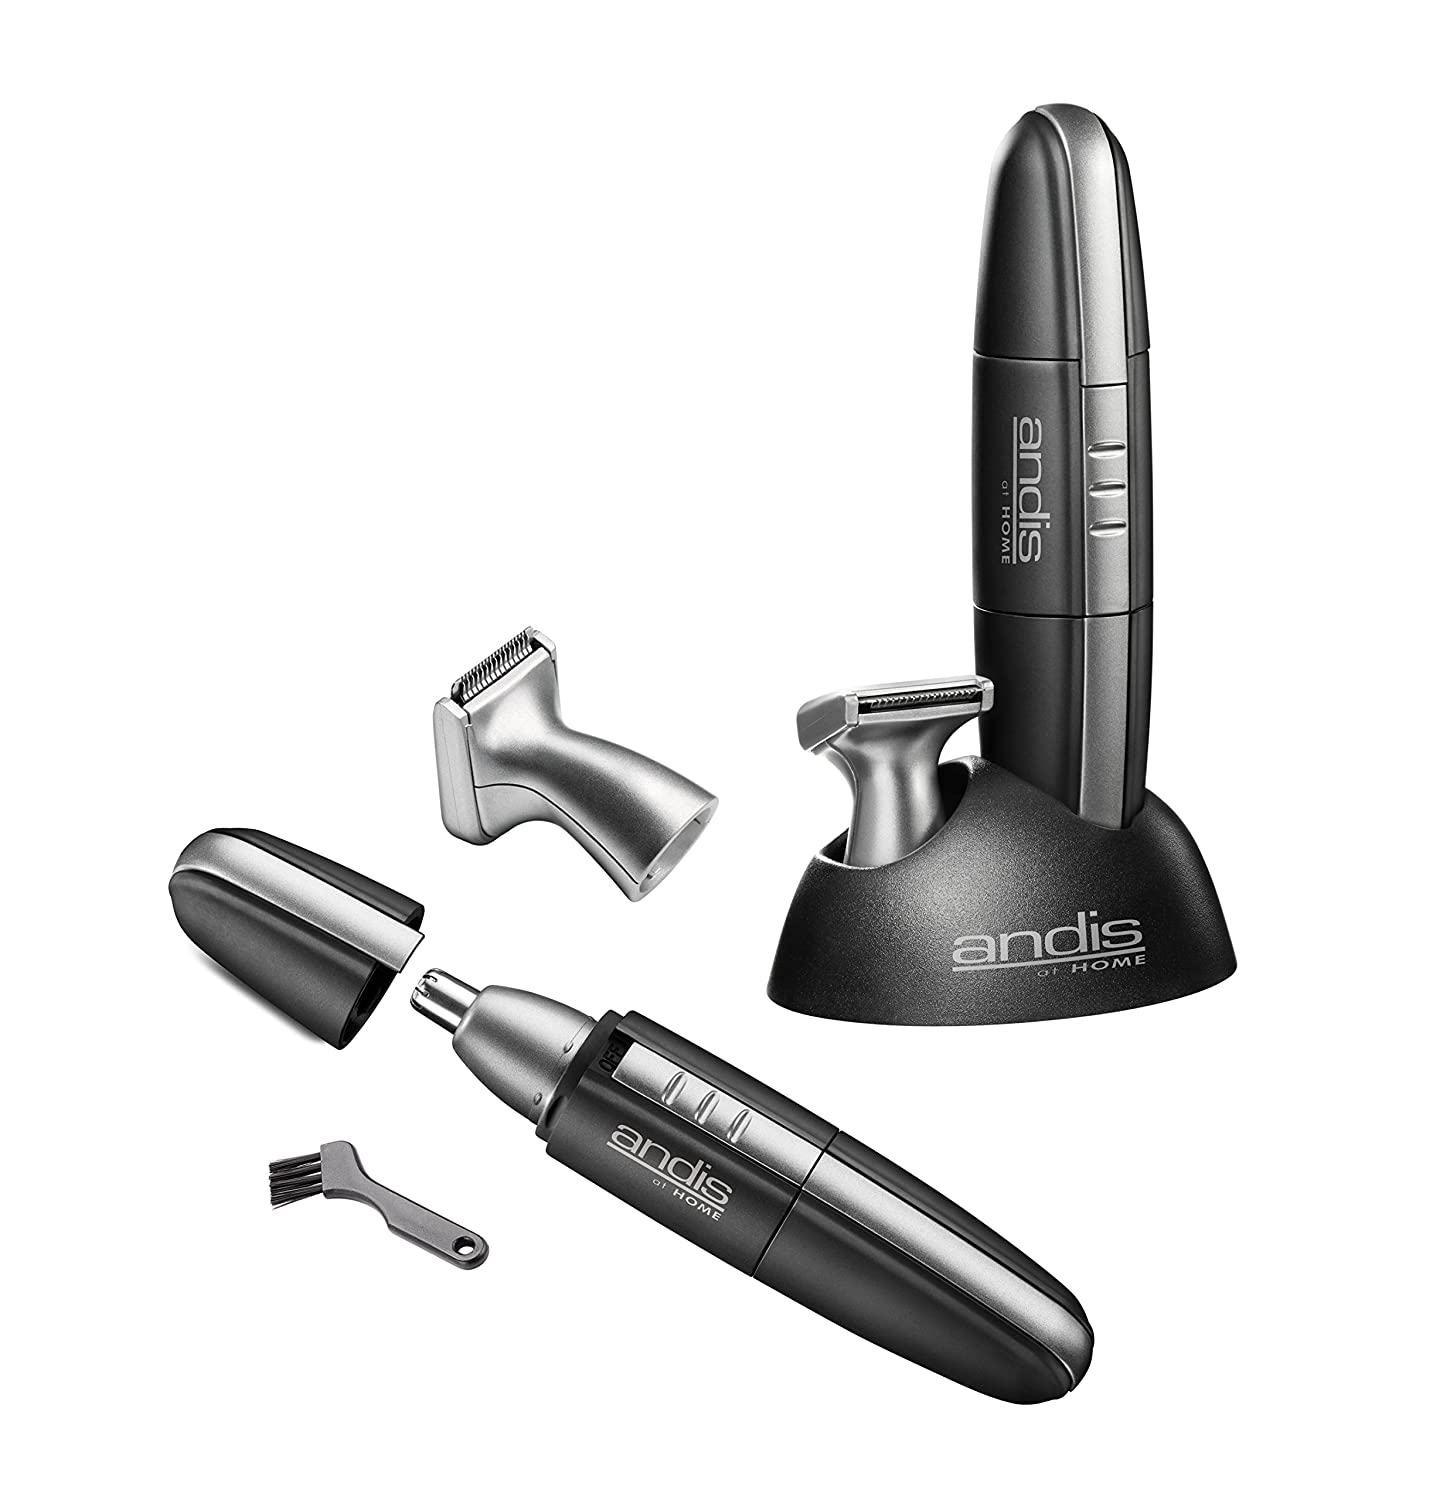 Andis MNT3 EasyTrim Personal Trimmer 5-Piece Kit 13085